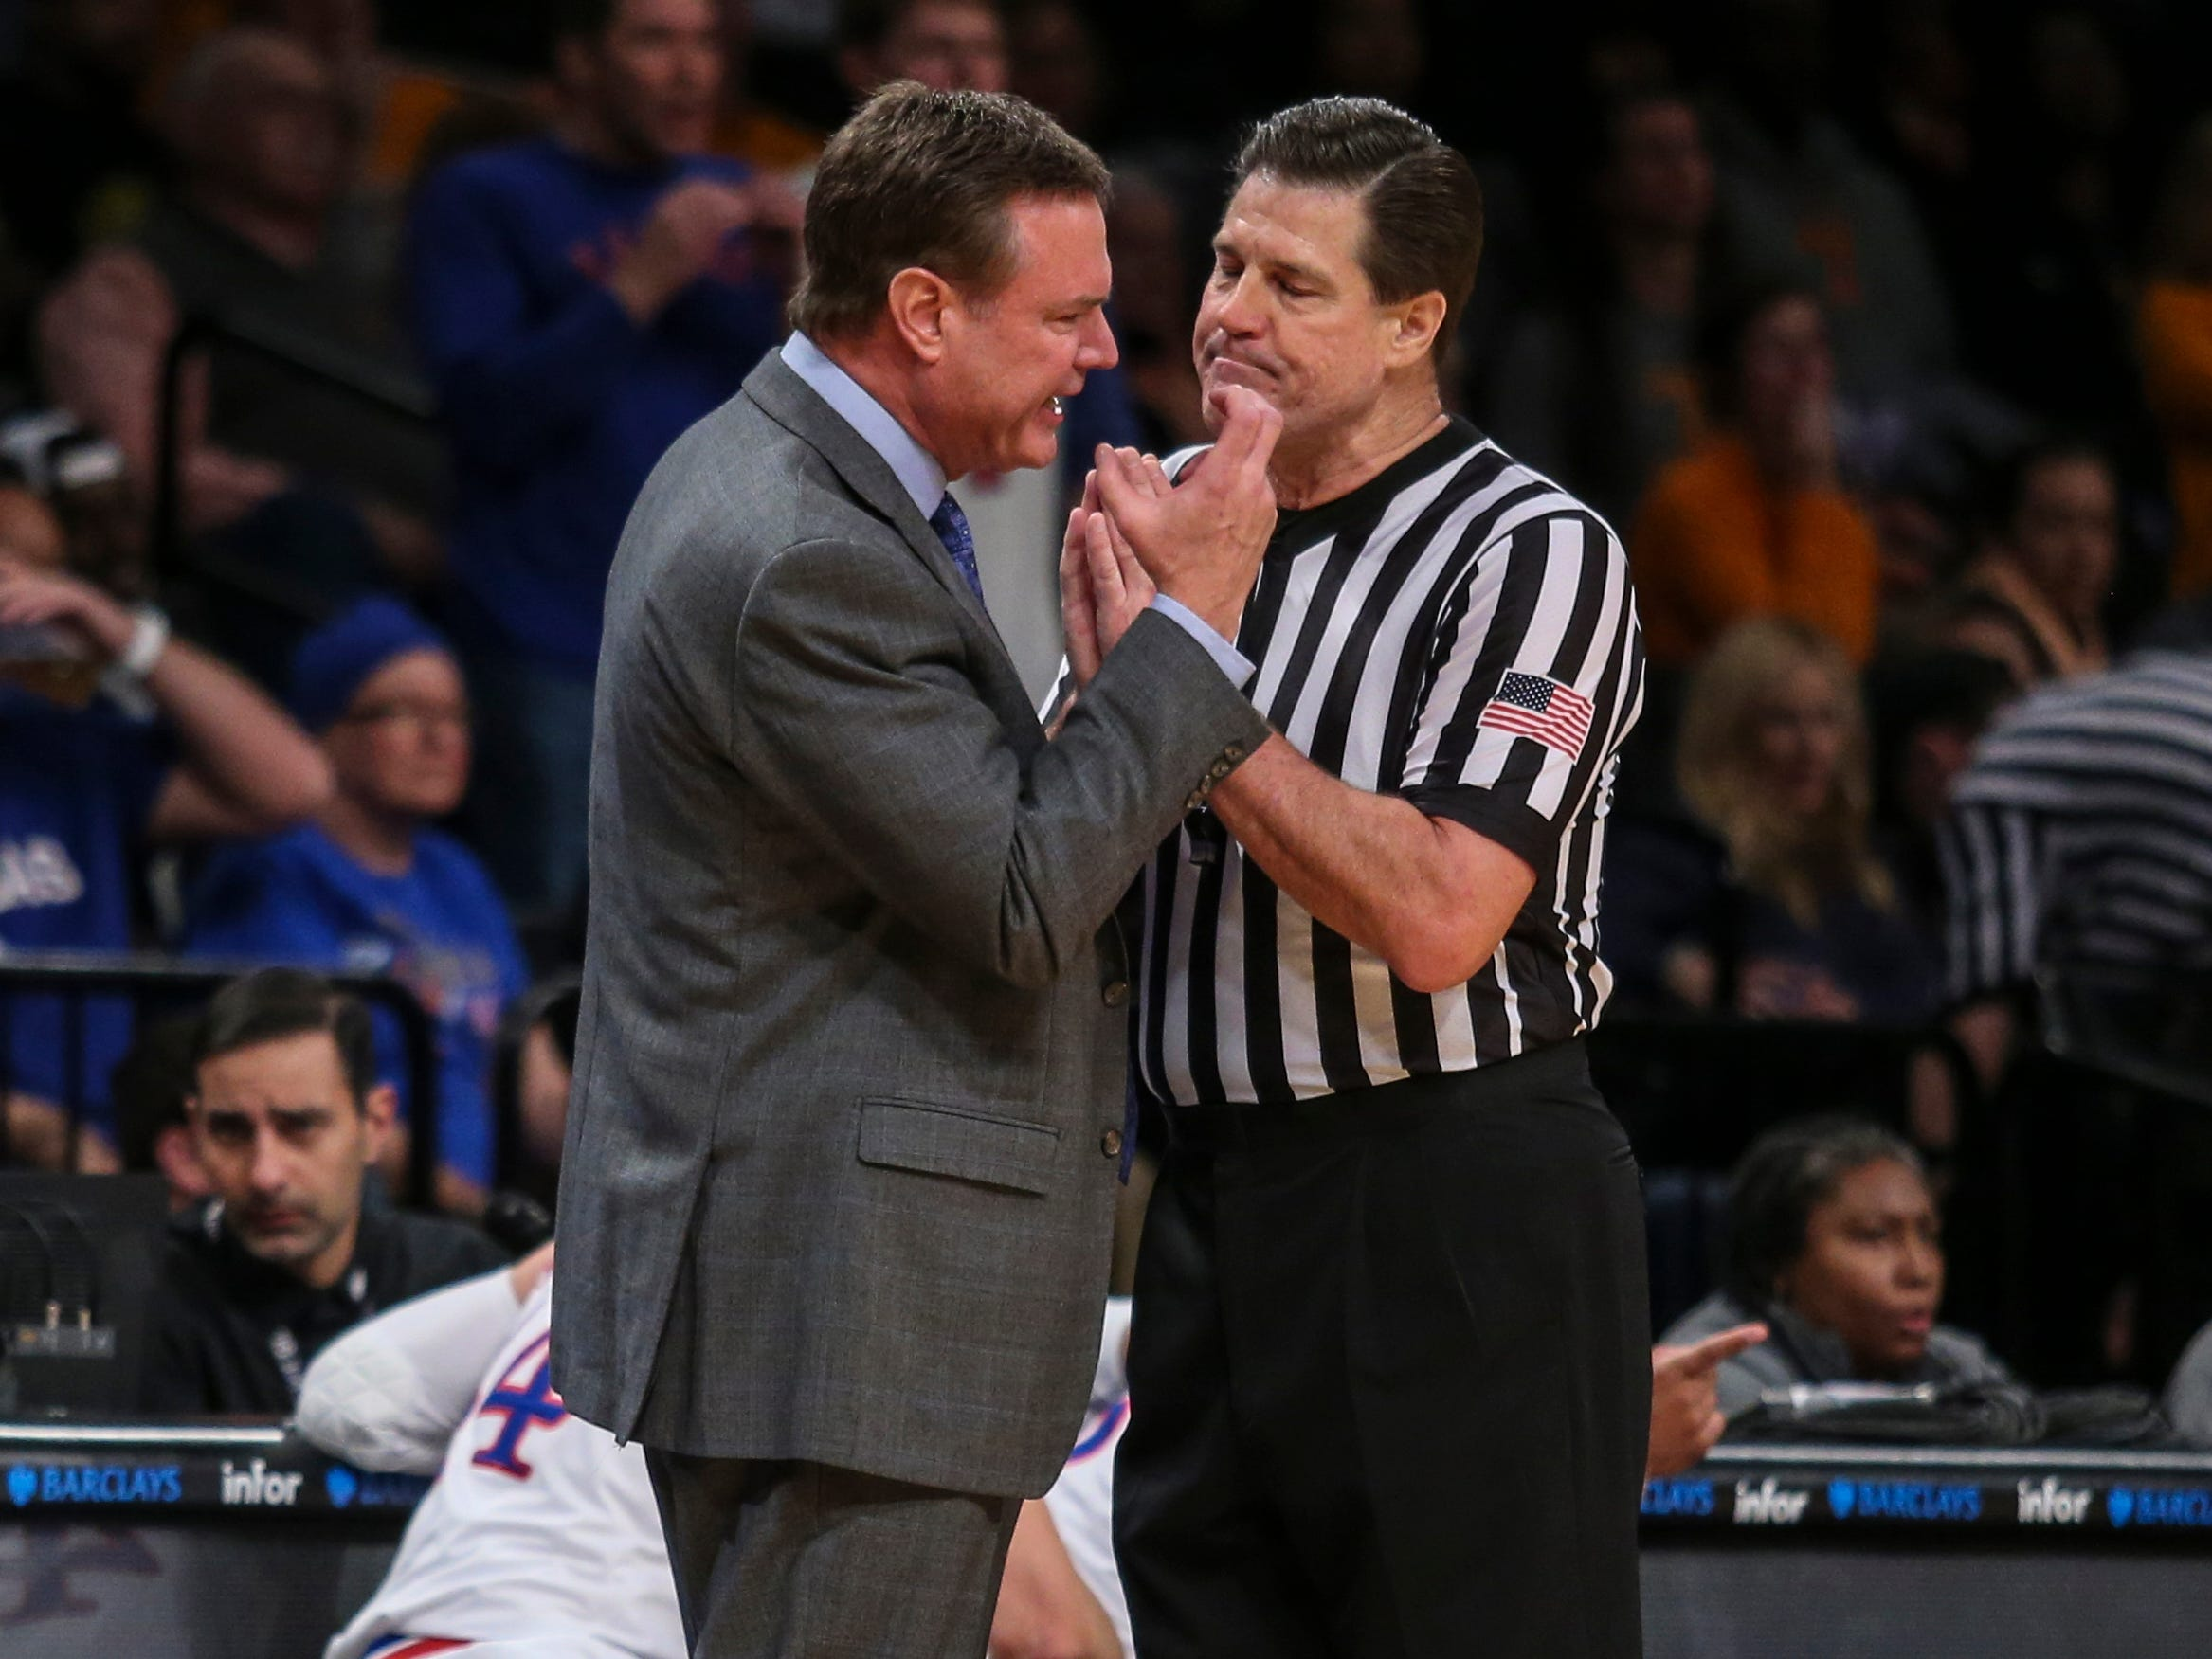 Nov 23, 2018; Brooklyn, NY, USA; Kansas Jayhawks head coach disagrees with a call in the first half of the championship game of the NIT Season Tipoff against the Tennessee Volunteers at Barclays Center. Mandatory Credit: Wendell Cruz-USA TODAY Sports